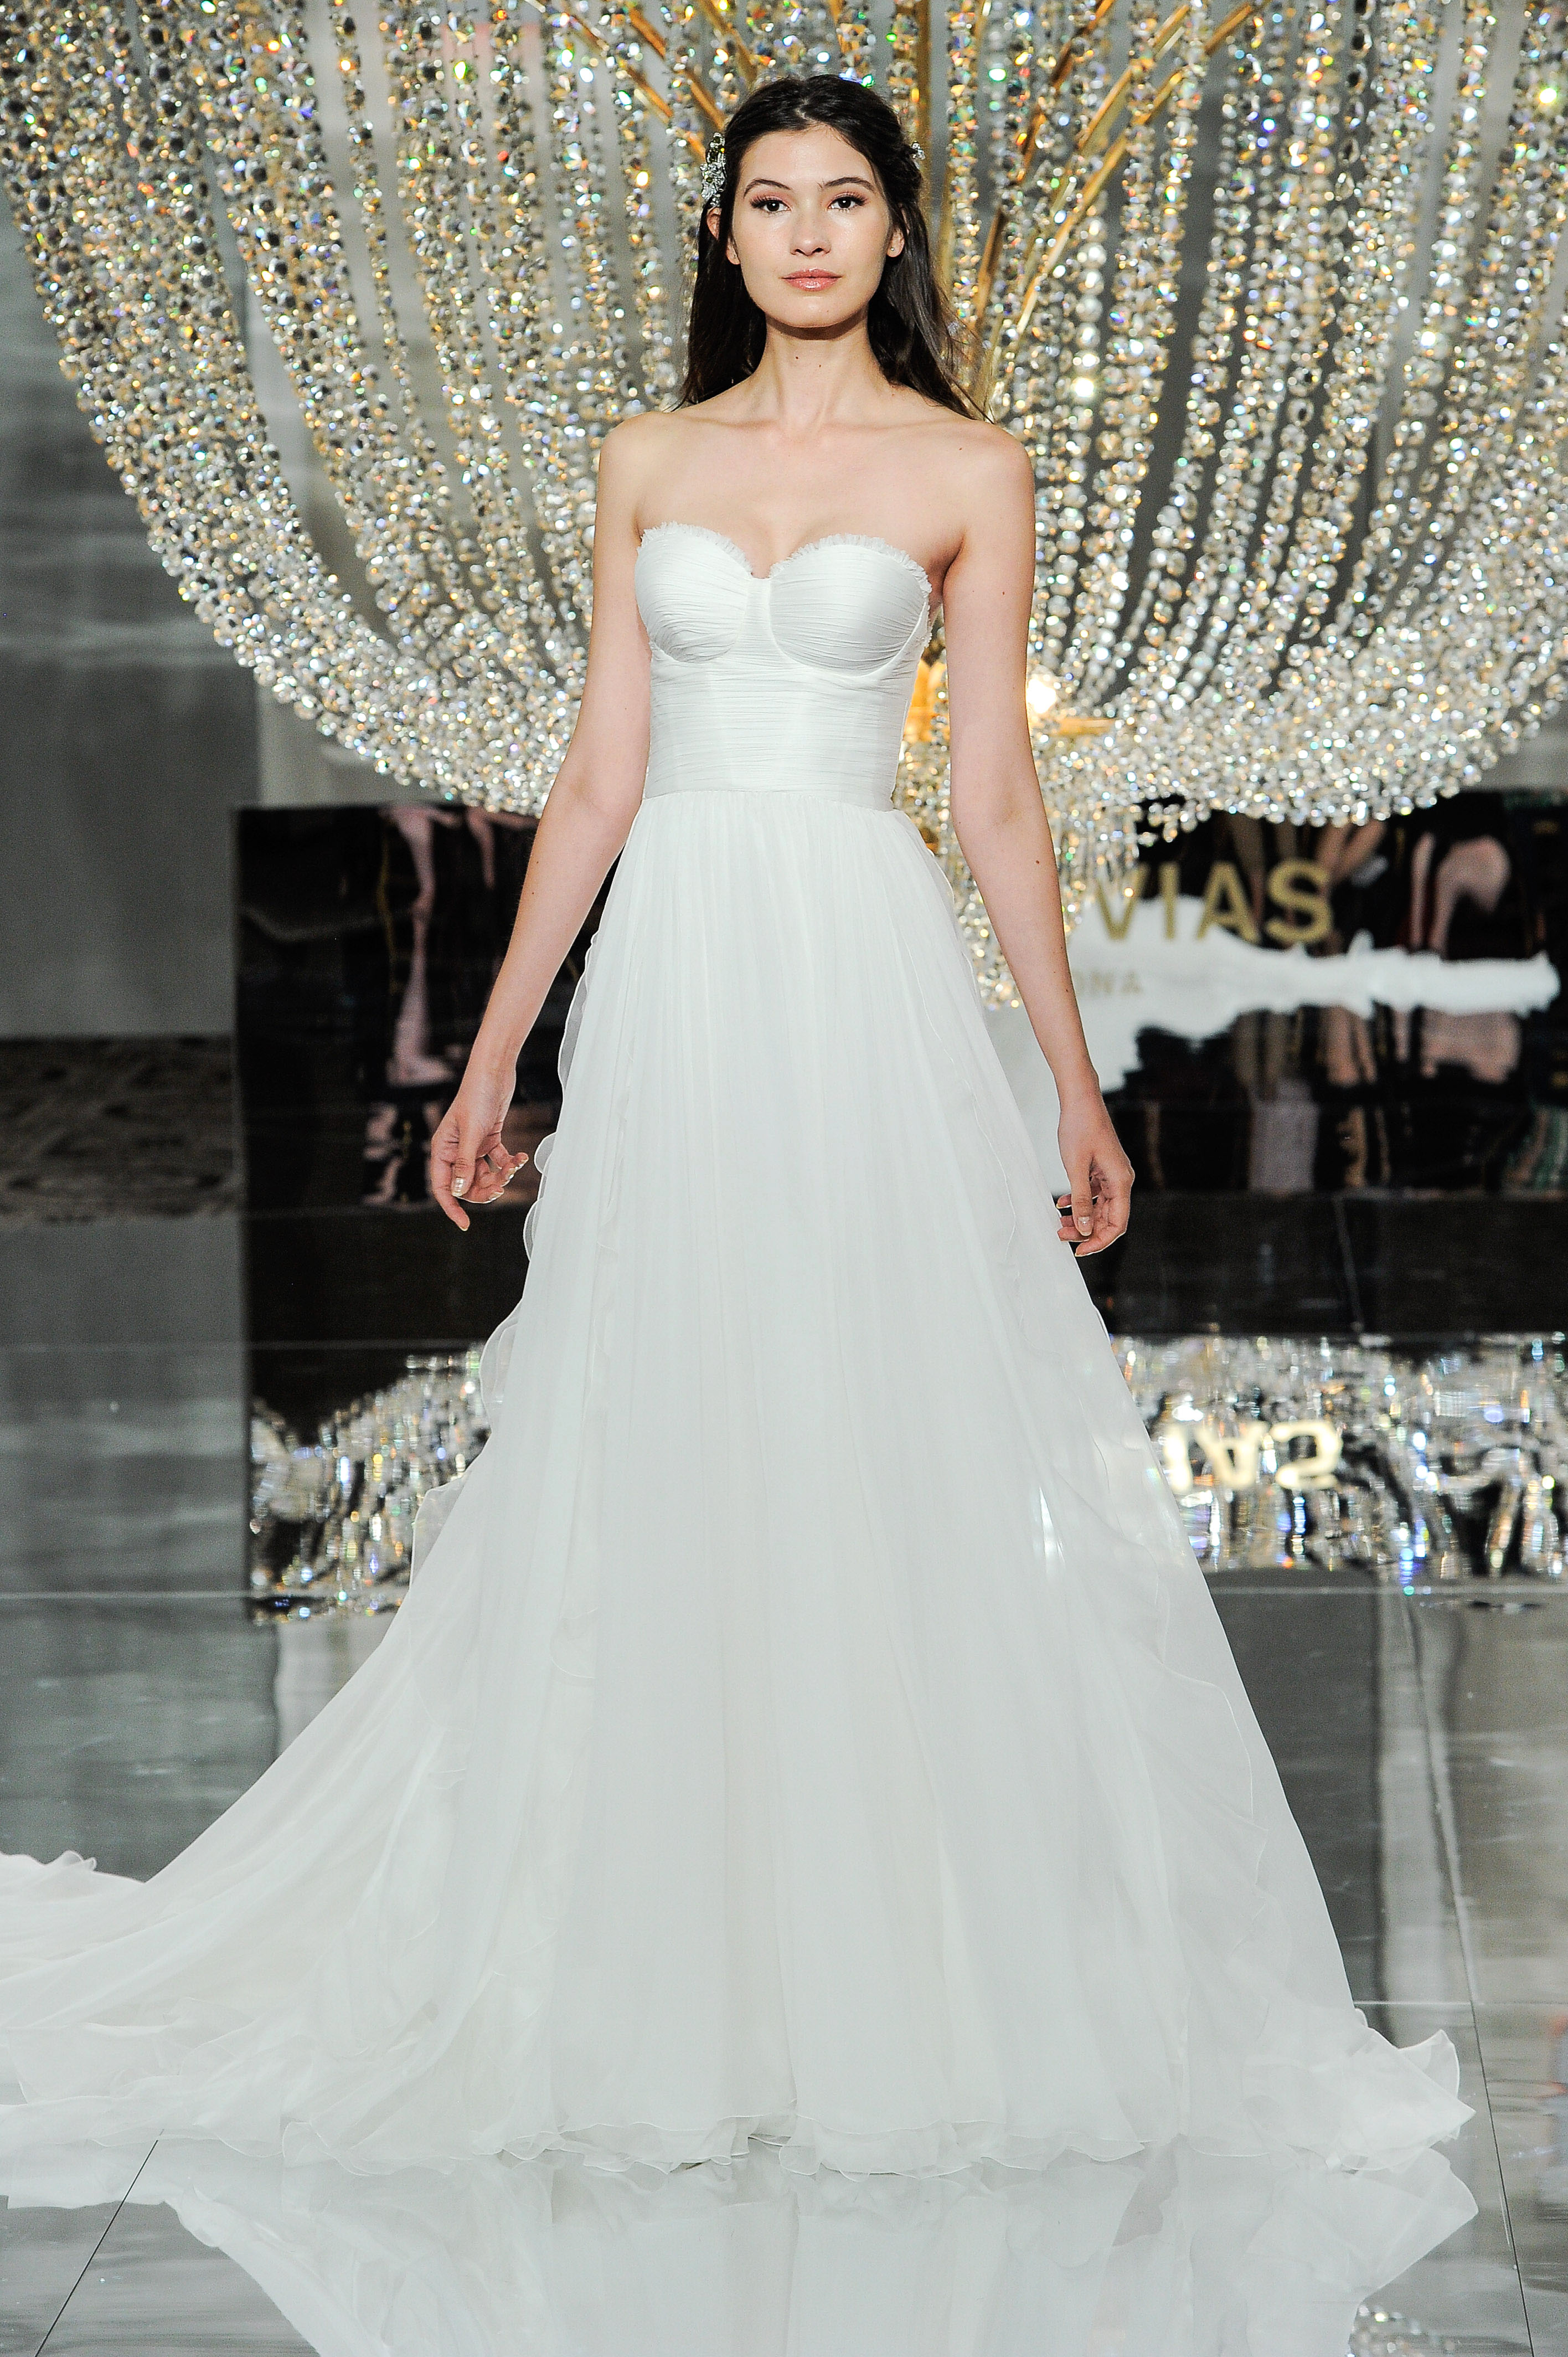 pronovias wedding dress fall 2018 sweetheart strapless a-line